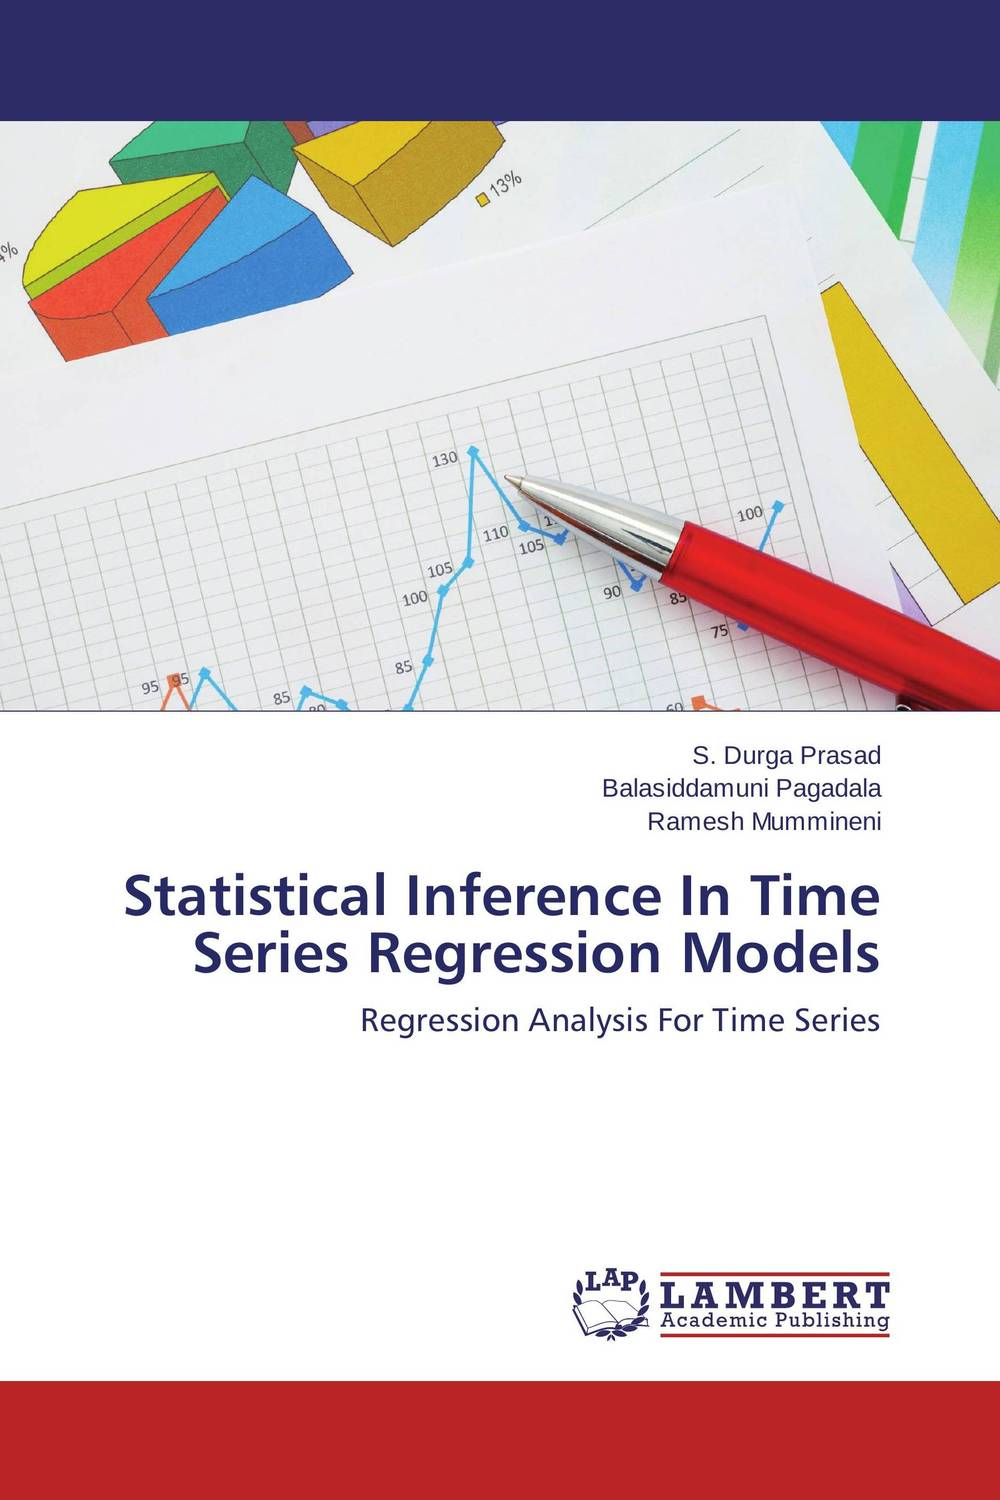 Statistical Inference In Time Series Regression Models